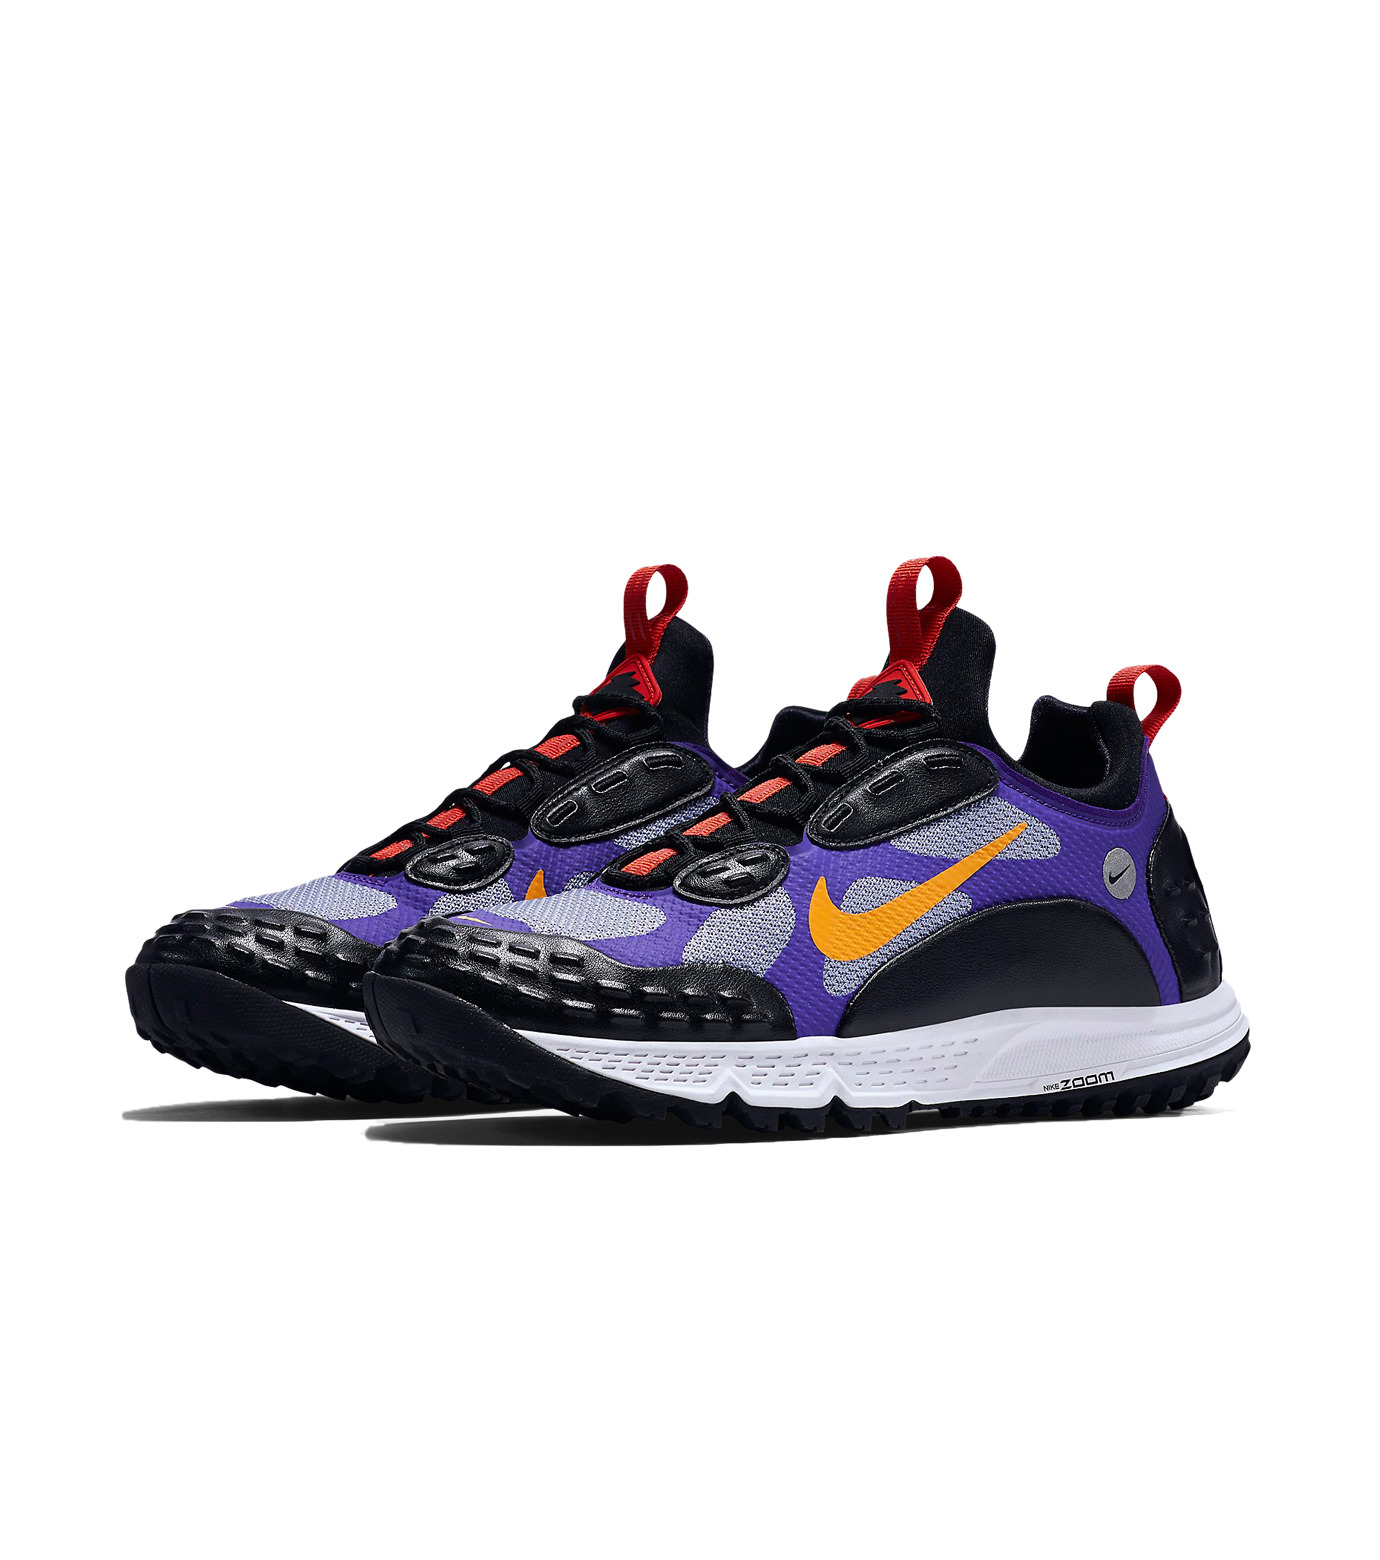 NIKE(ナイキ)のAIR ZOOM ALBIS '16-BLUE(シューズ/shoes)-904334-002-92 拡大詳細画像3